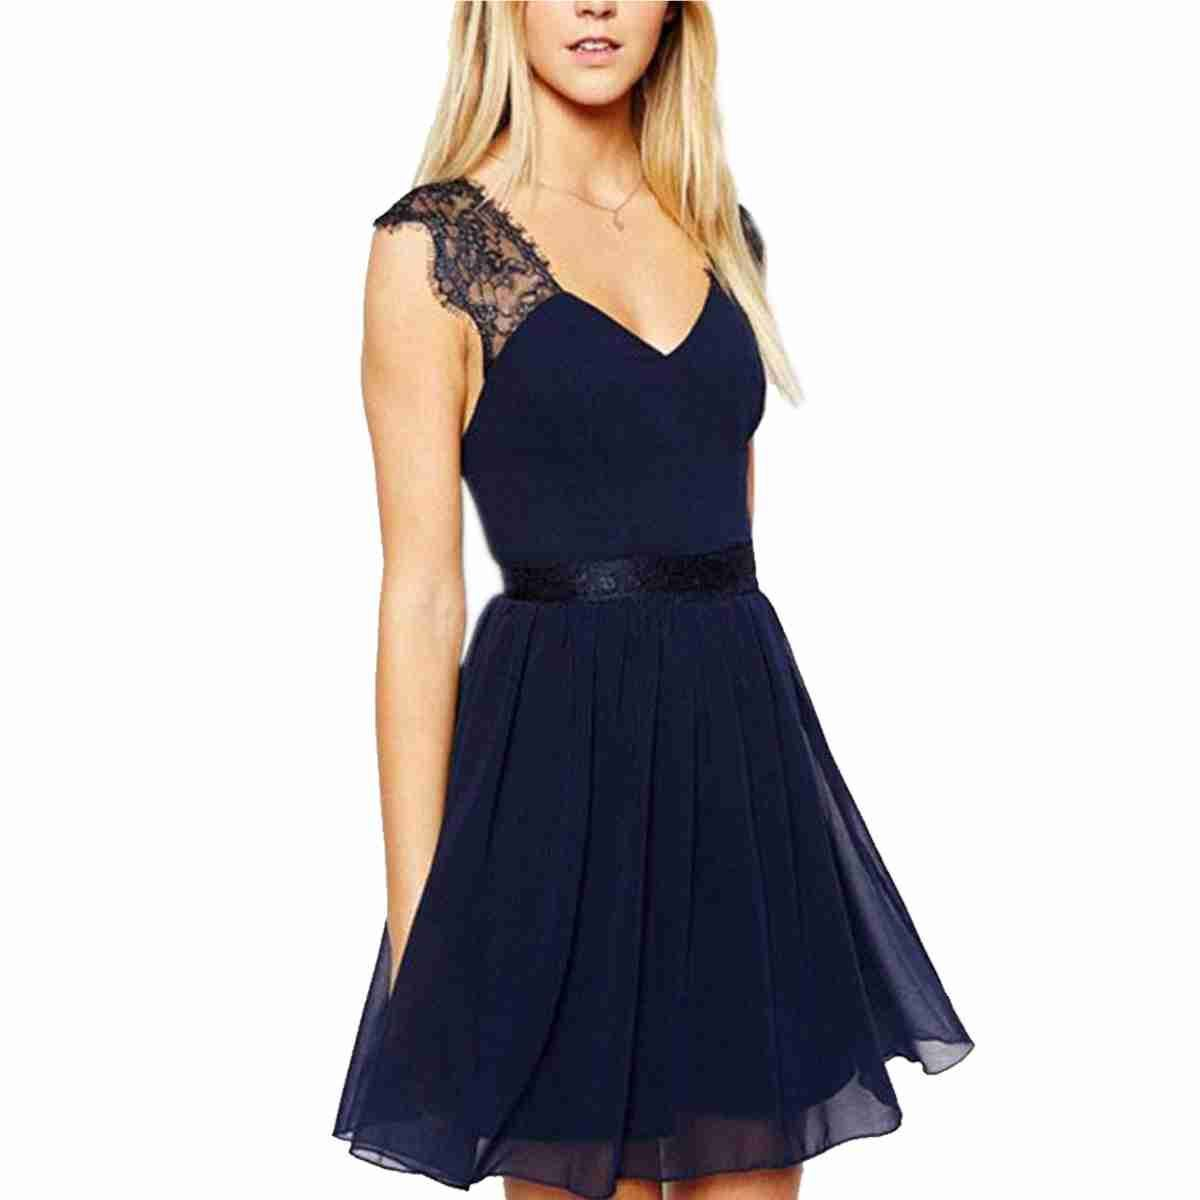 Picture of Poppins Girls Frock